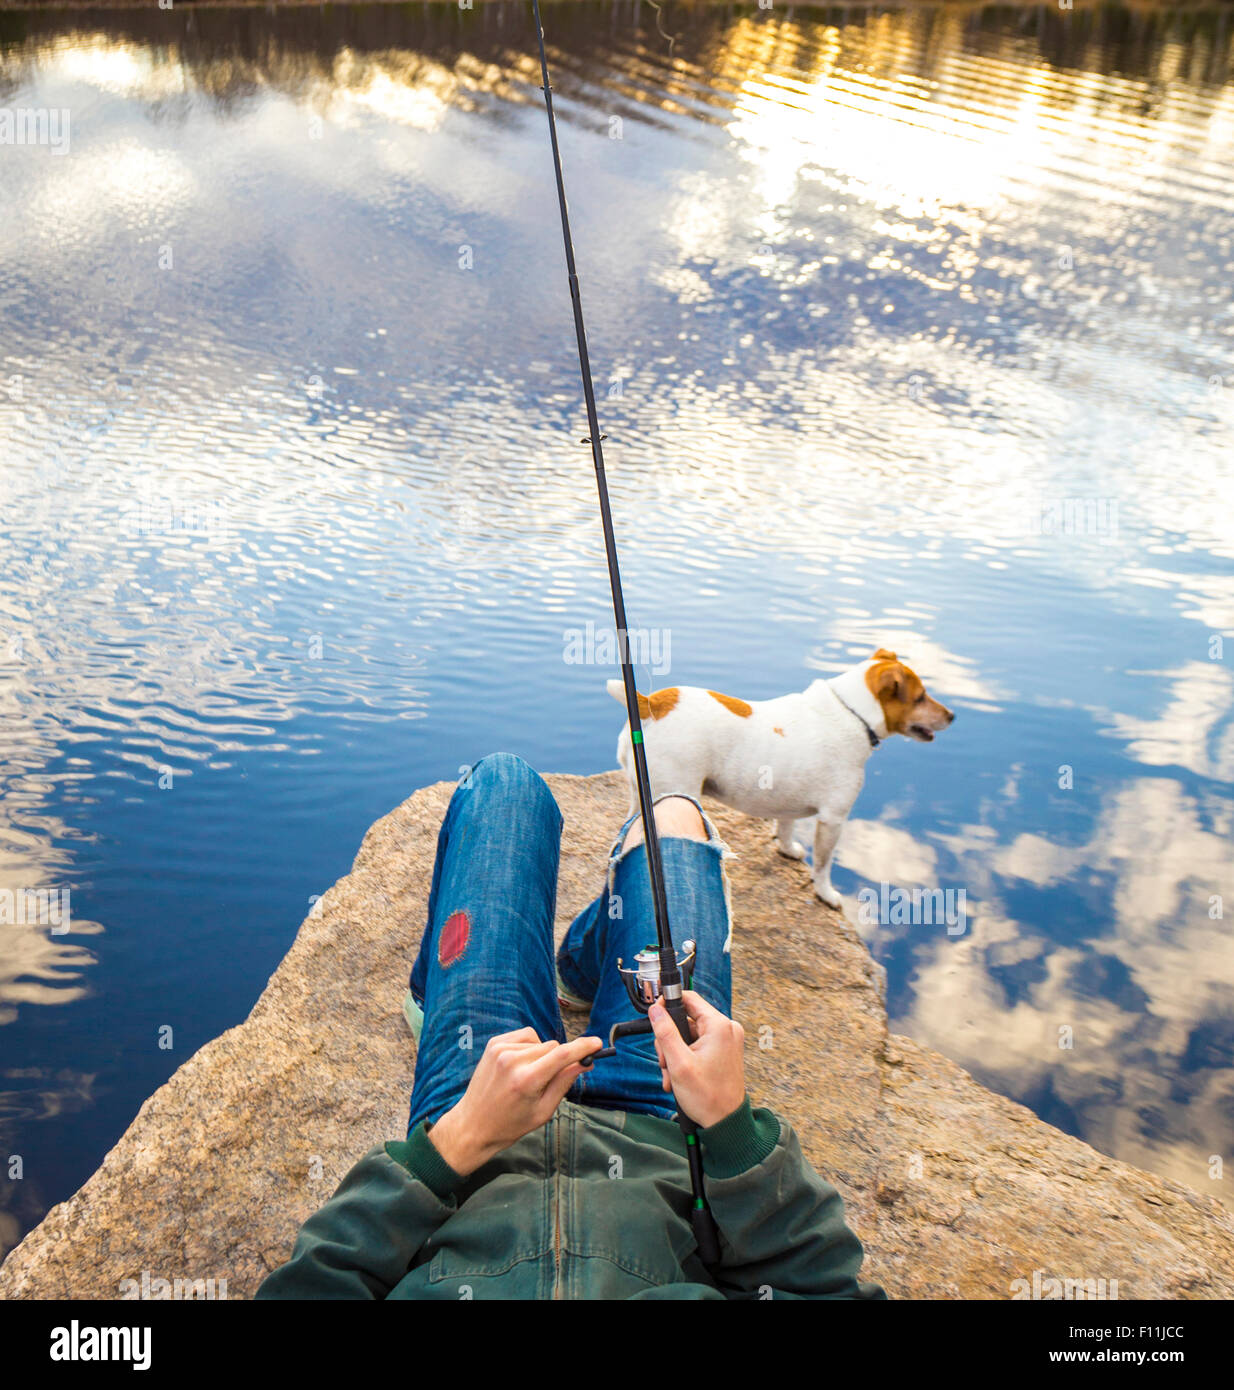 Caucasian man fishing with dog in remote lake - Stock Image